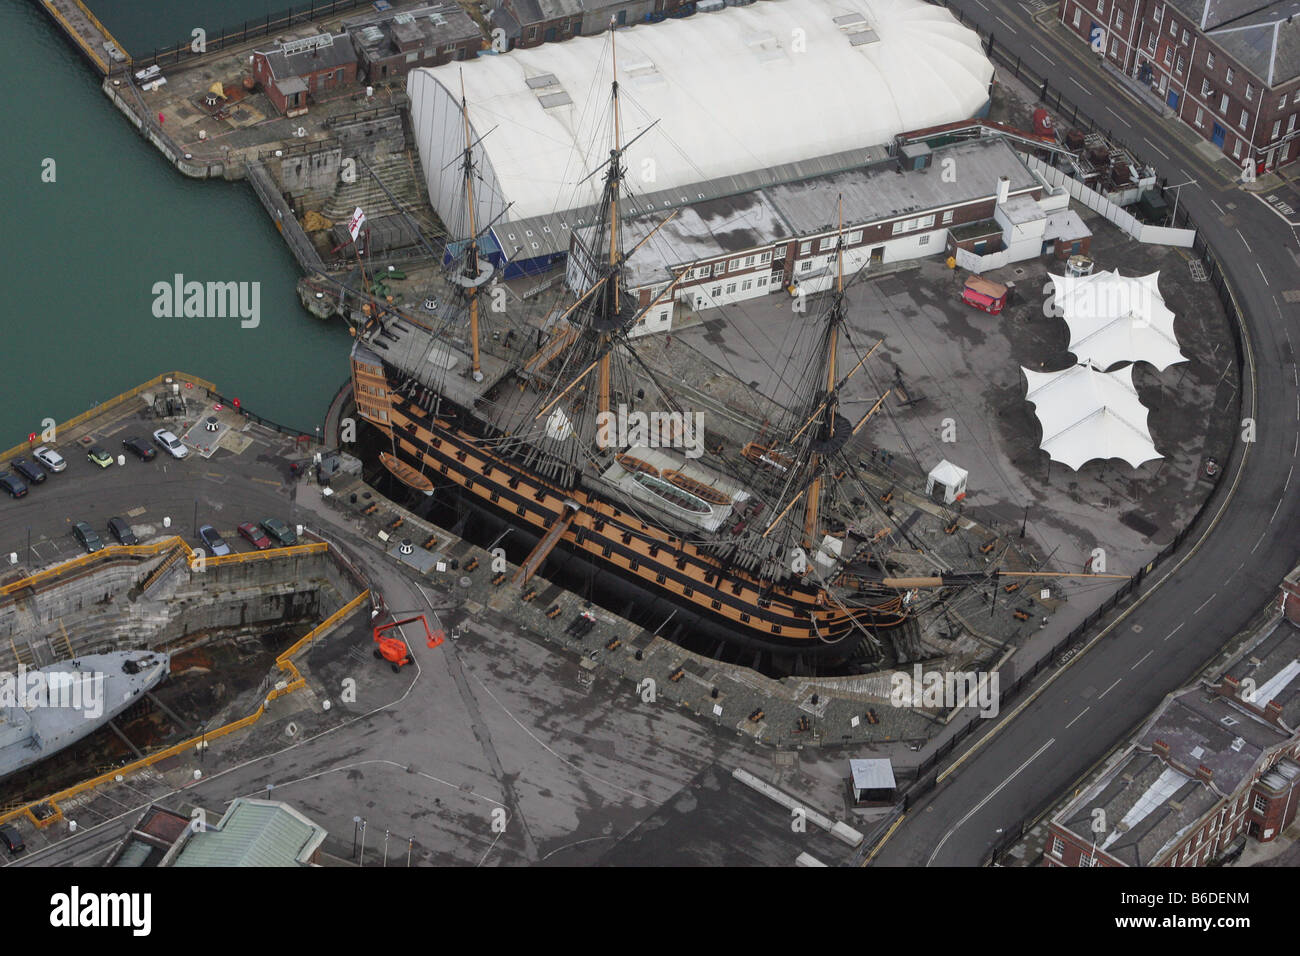 Aerial photograph of HMS Victory in dry dock at Portsmouth ...